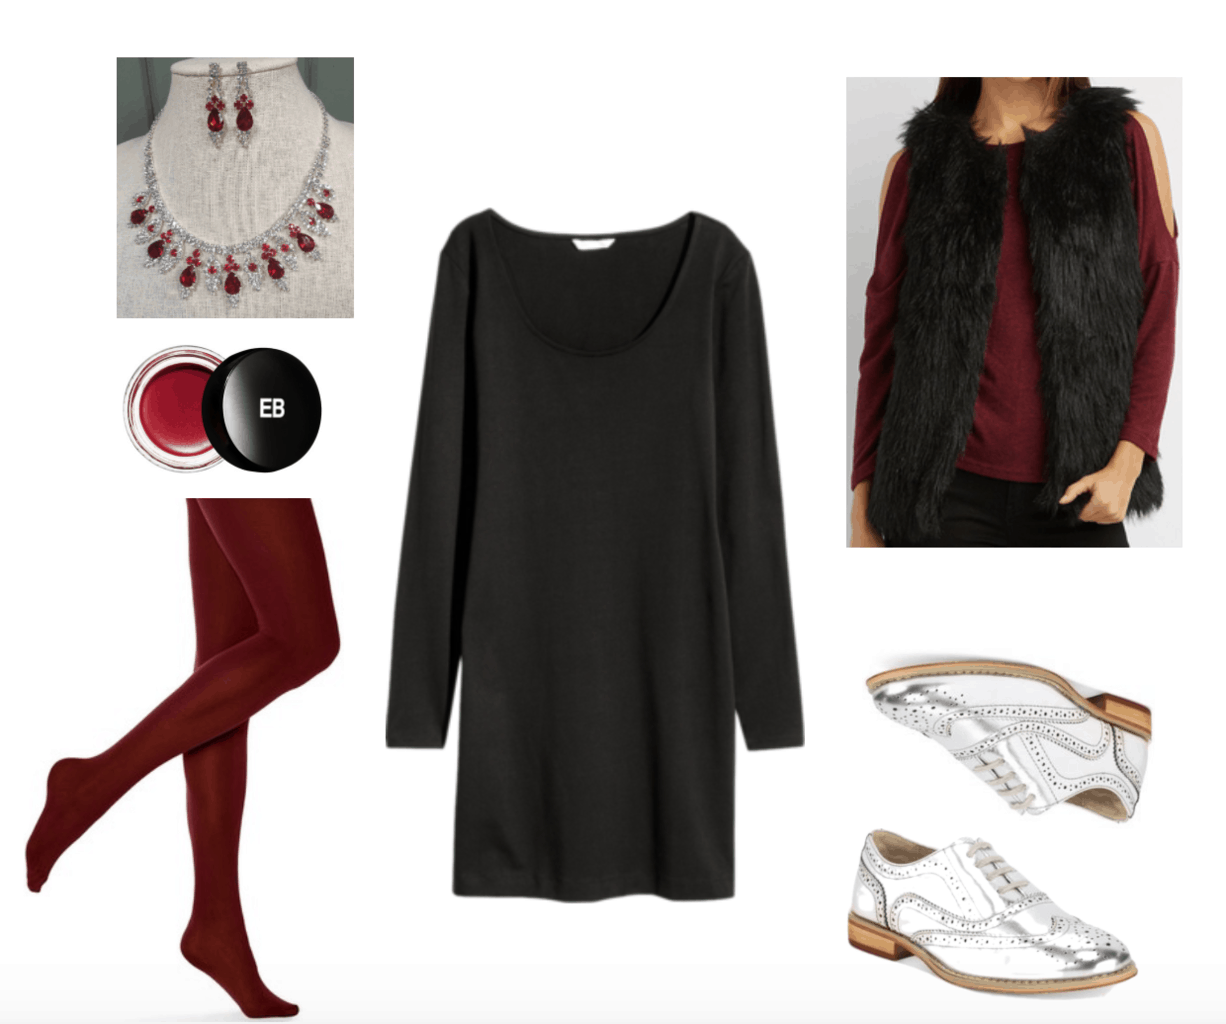 Little black dress outfit: LBD styled for Thanksgiving dinner with red tights and accessories.